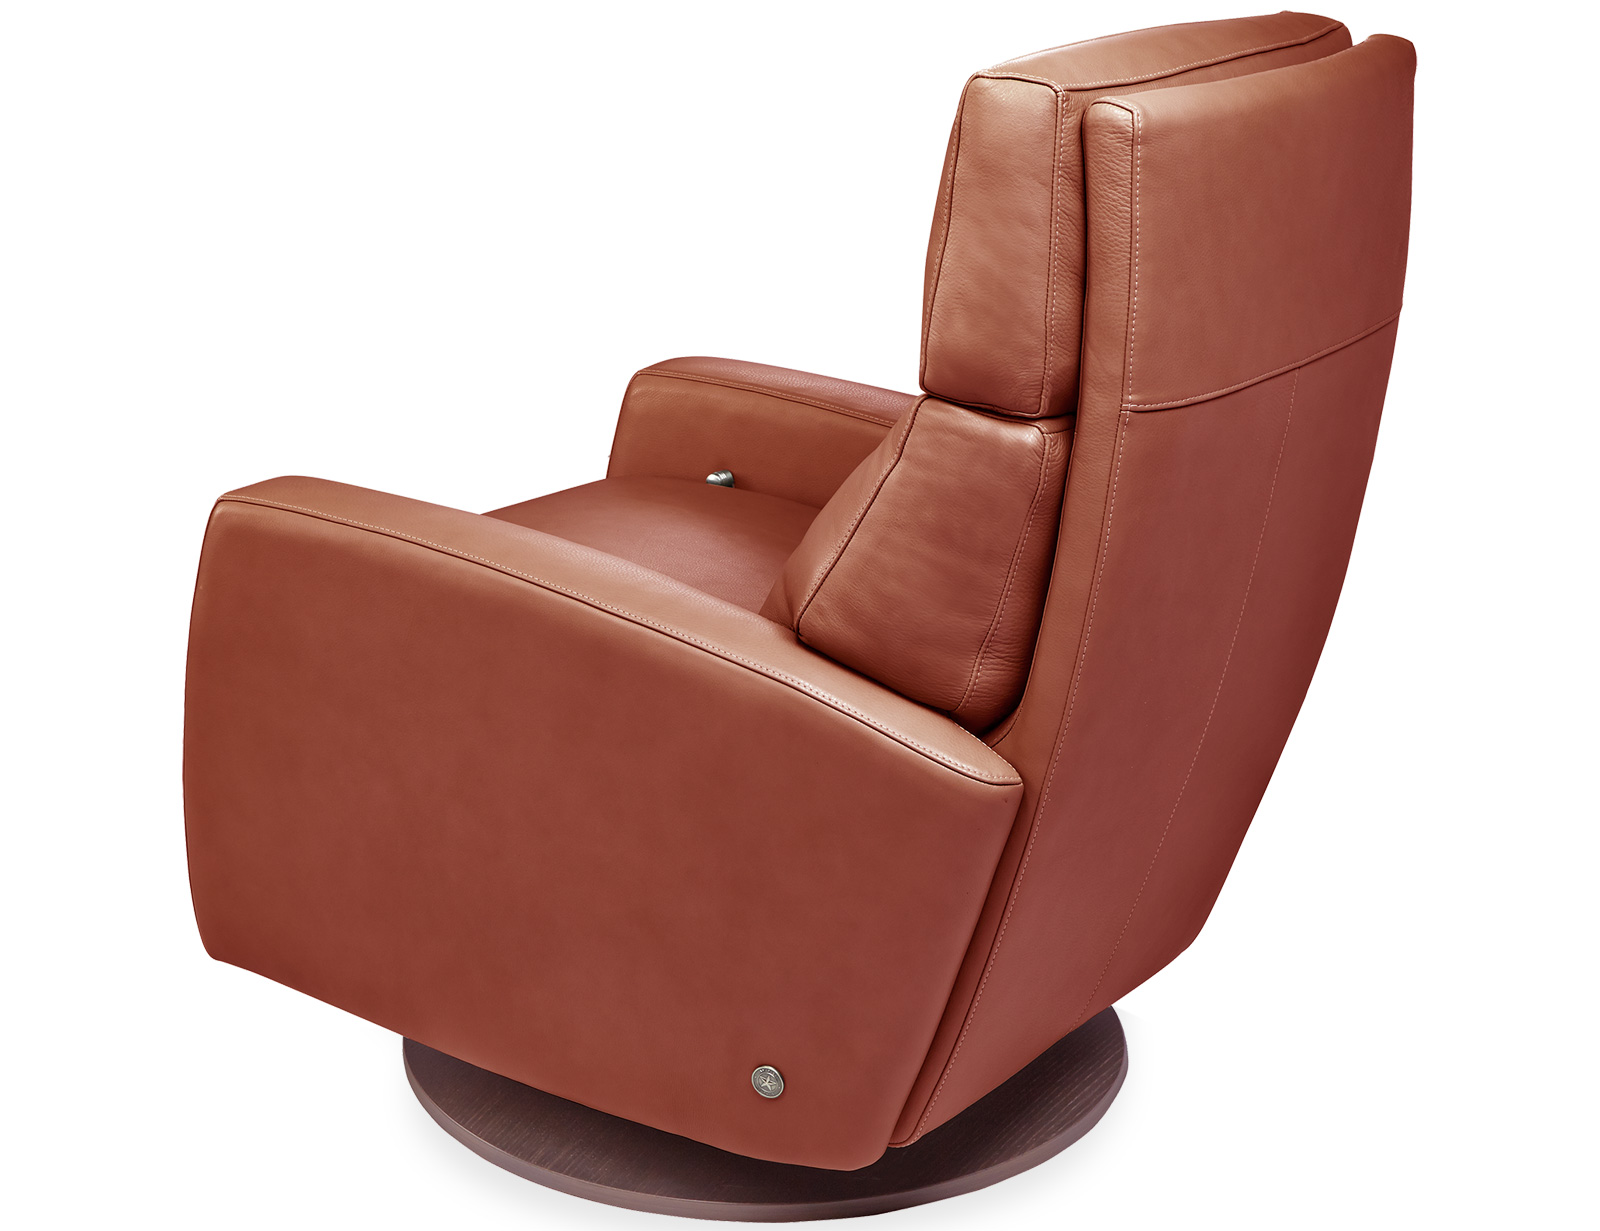 American Leather Elliot Comfort Recliner available with swivel base